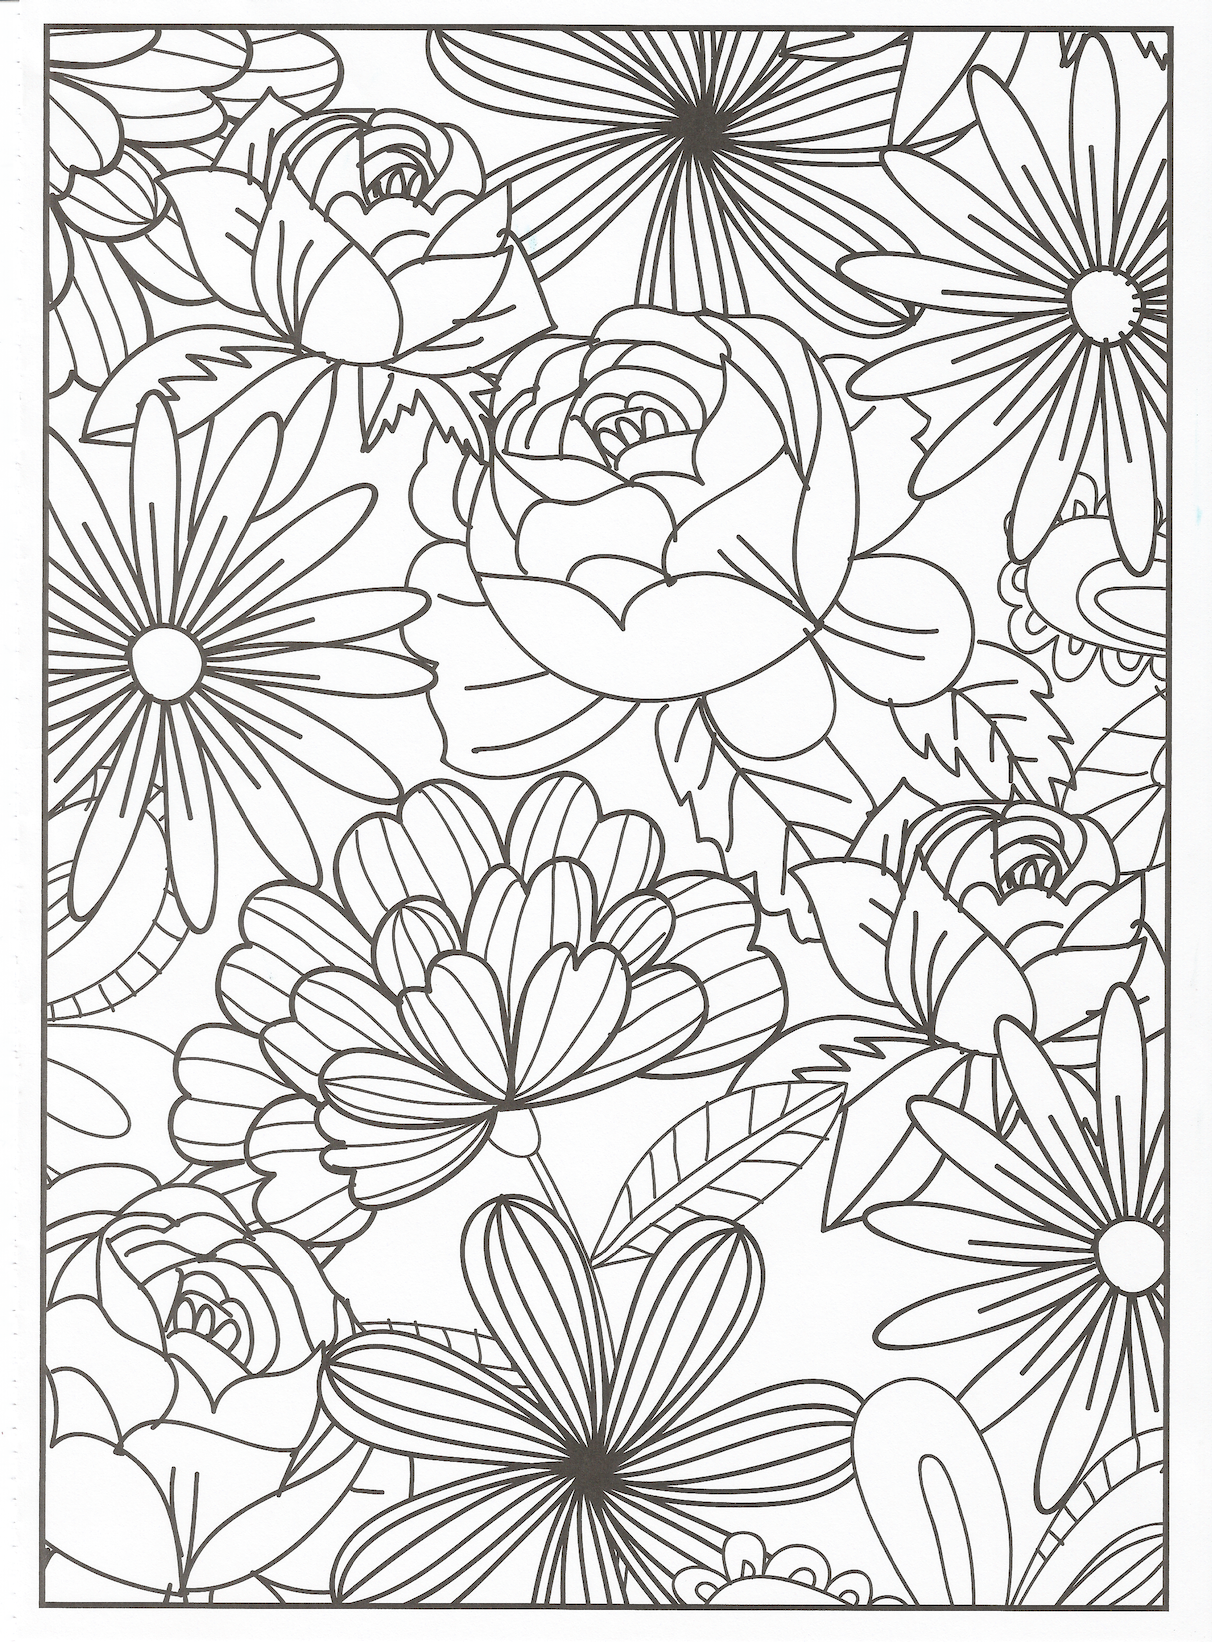 Timeless Creations - Coloring Page | Flower coloring pages ...